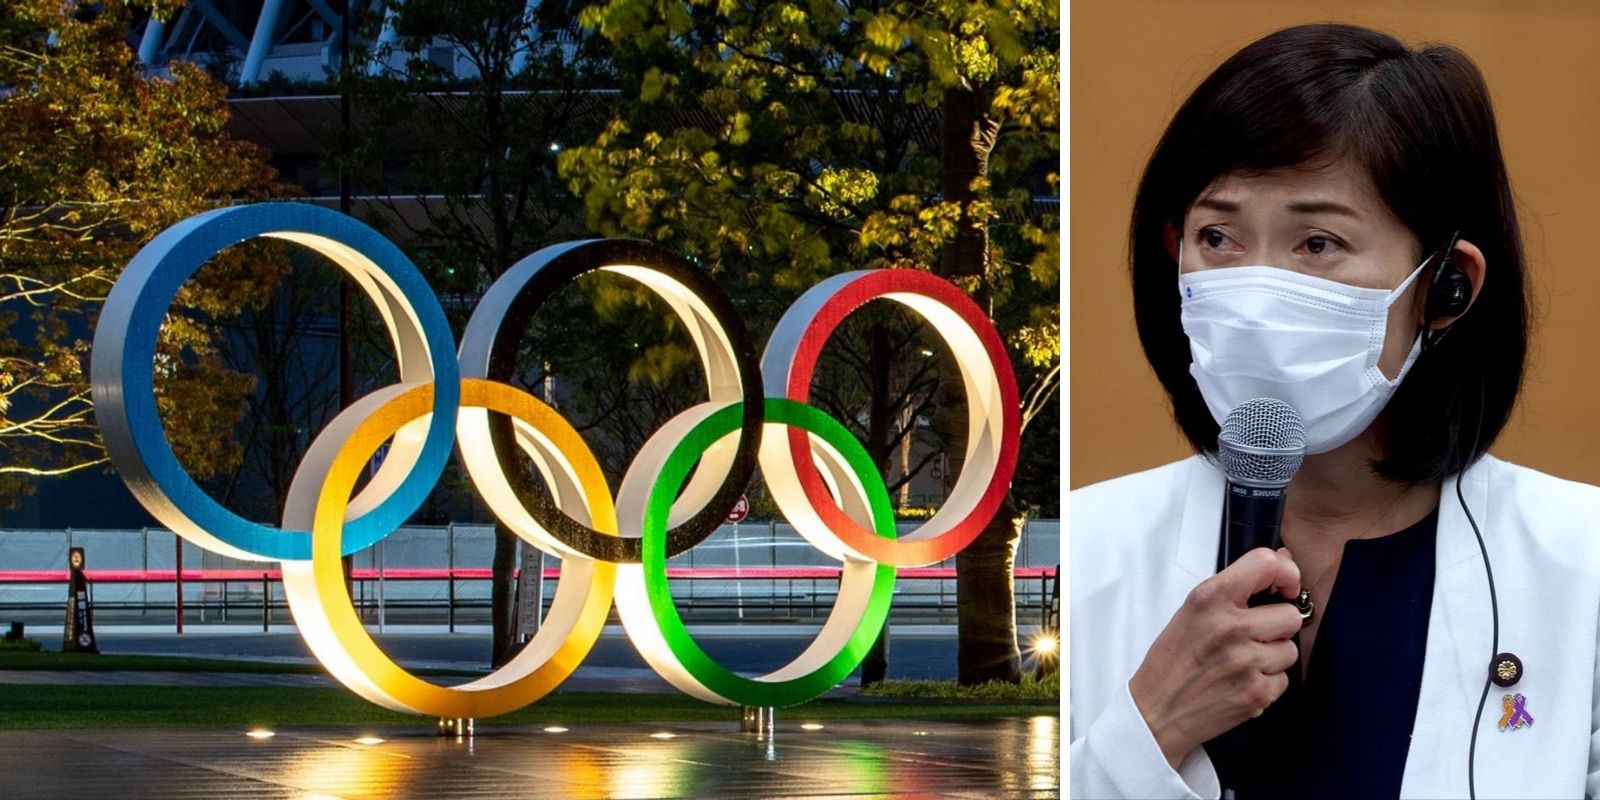 BREAKING: Tokyo Olympics to be held without fans in stadiums